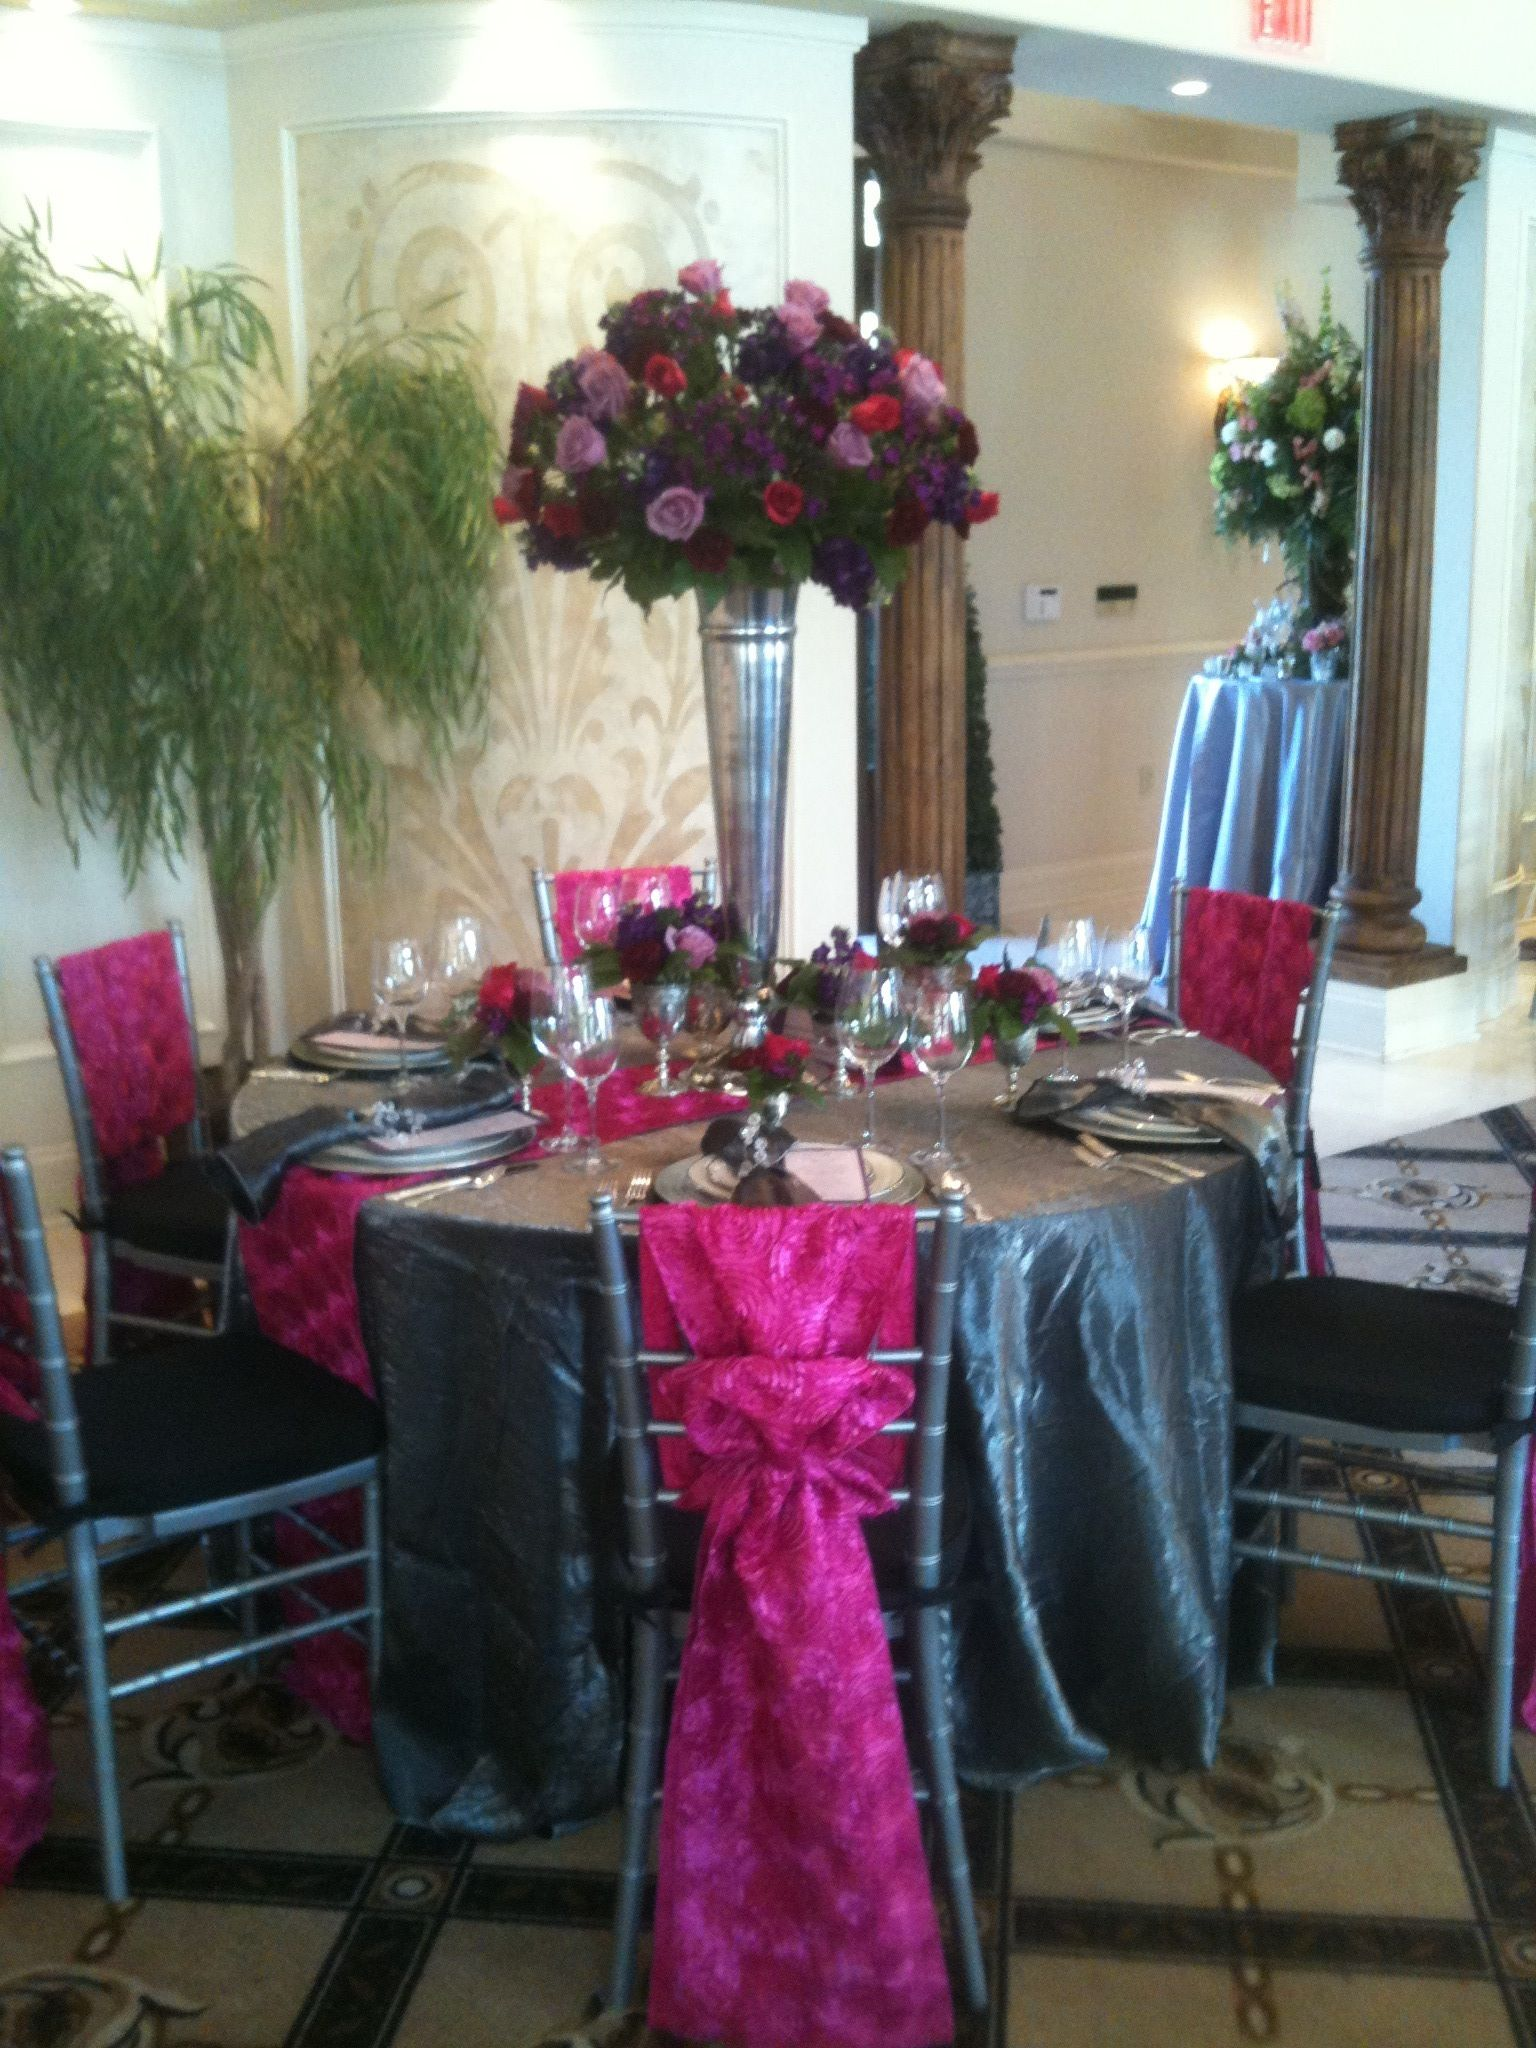 Tall Vase Centerpieces For Weddings Wedding Centerpiece With Hot Pink Roses Lilac